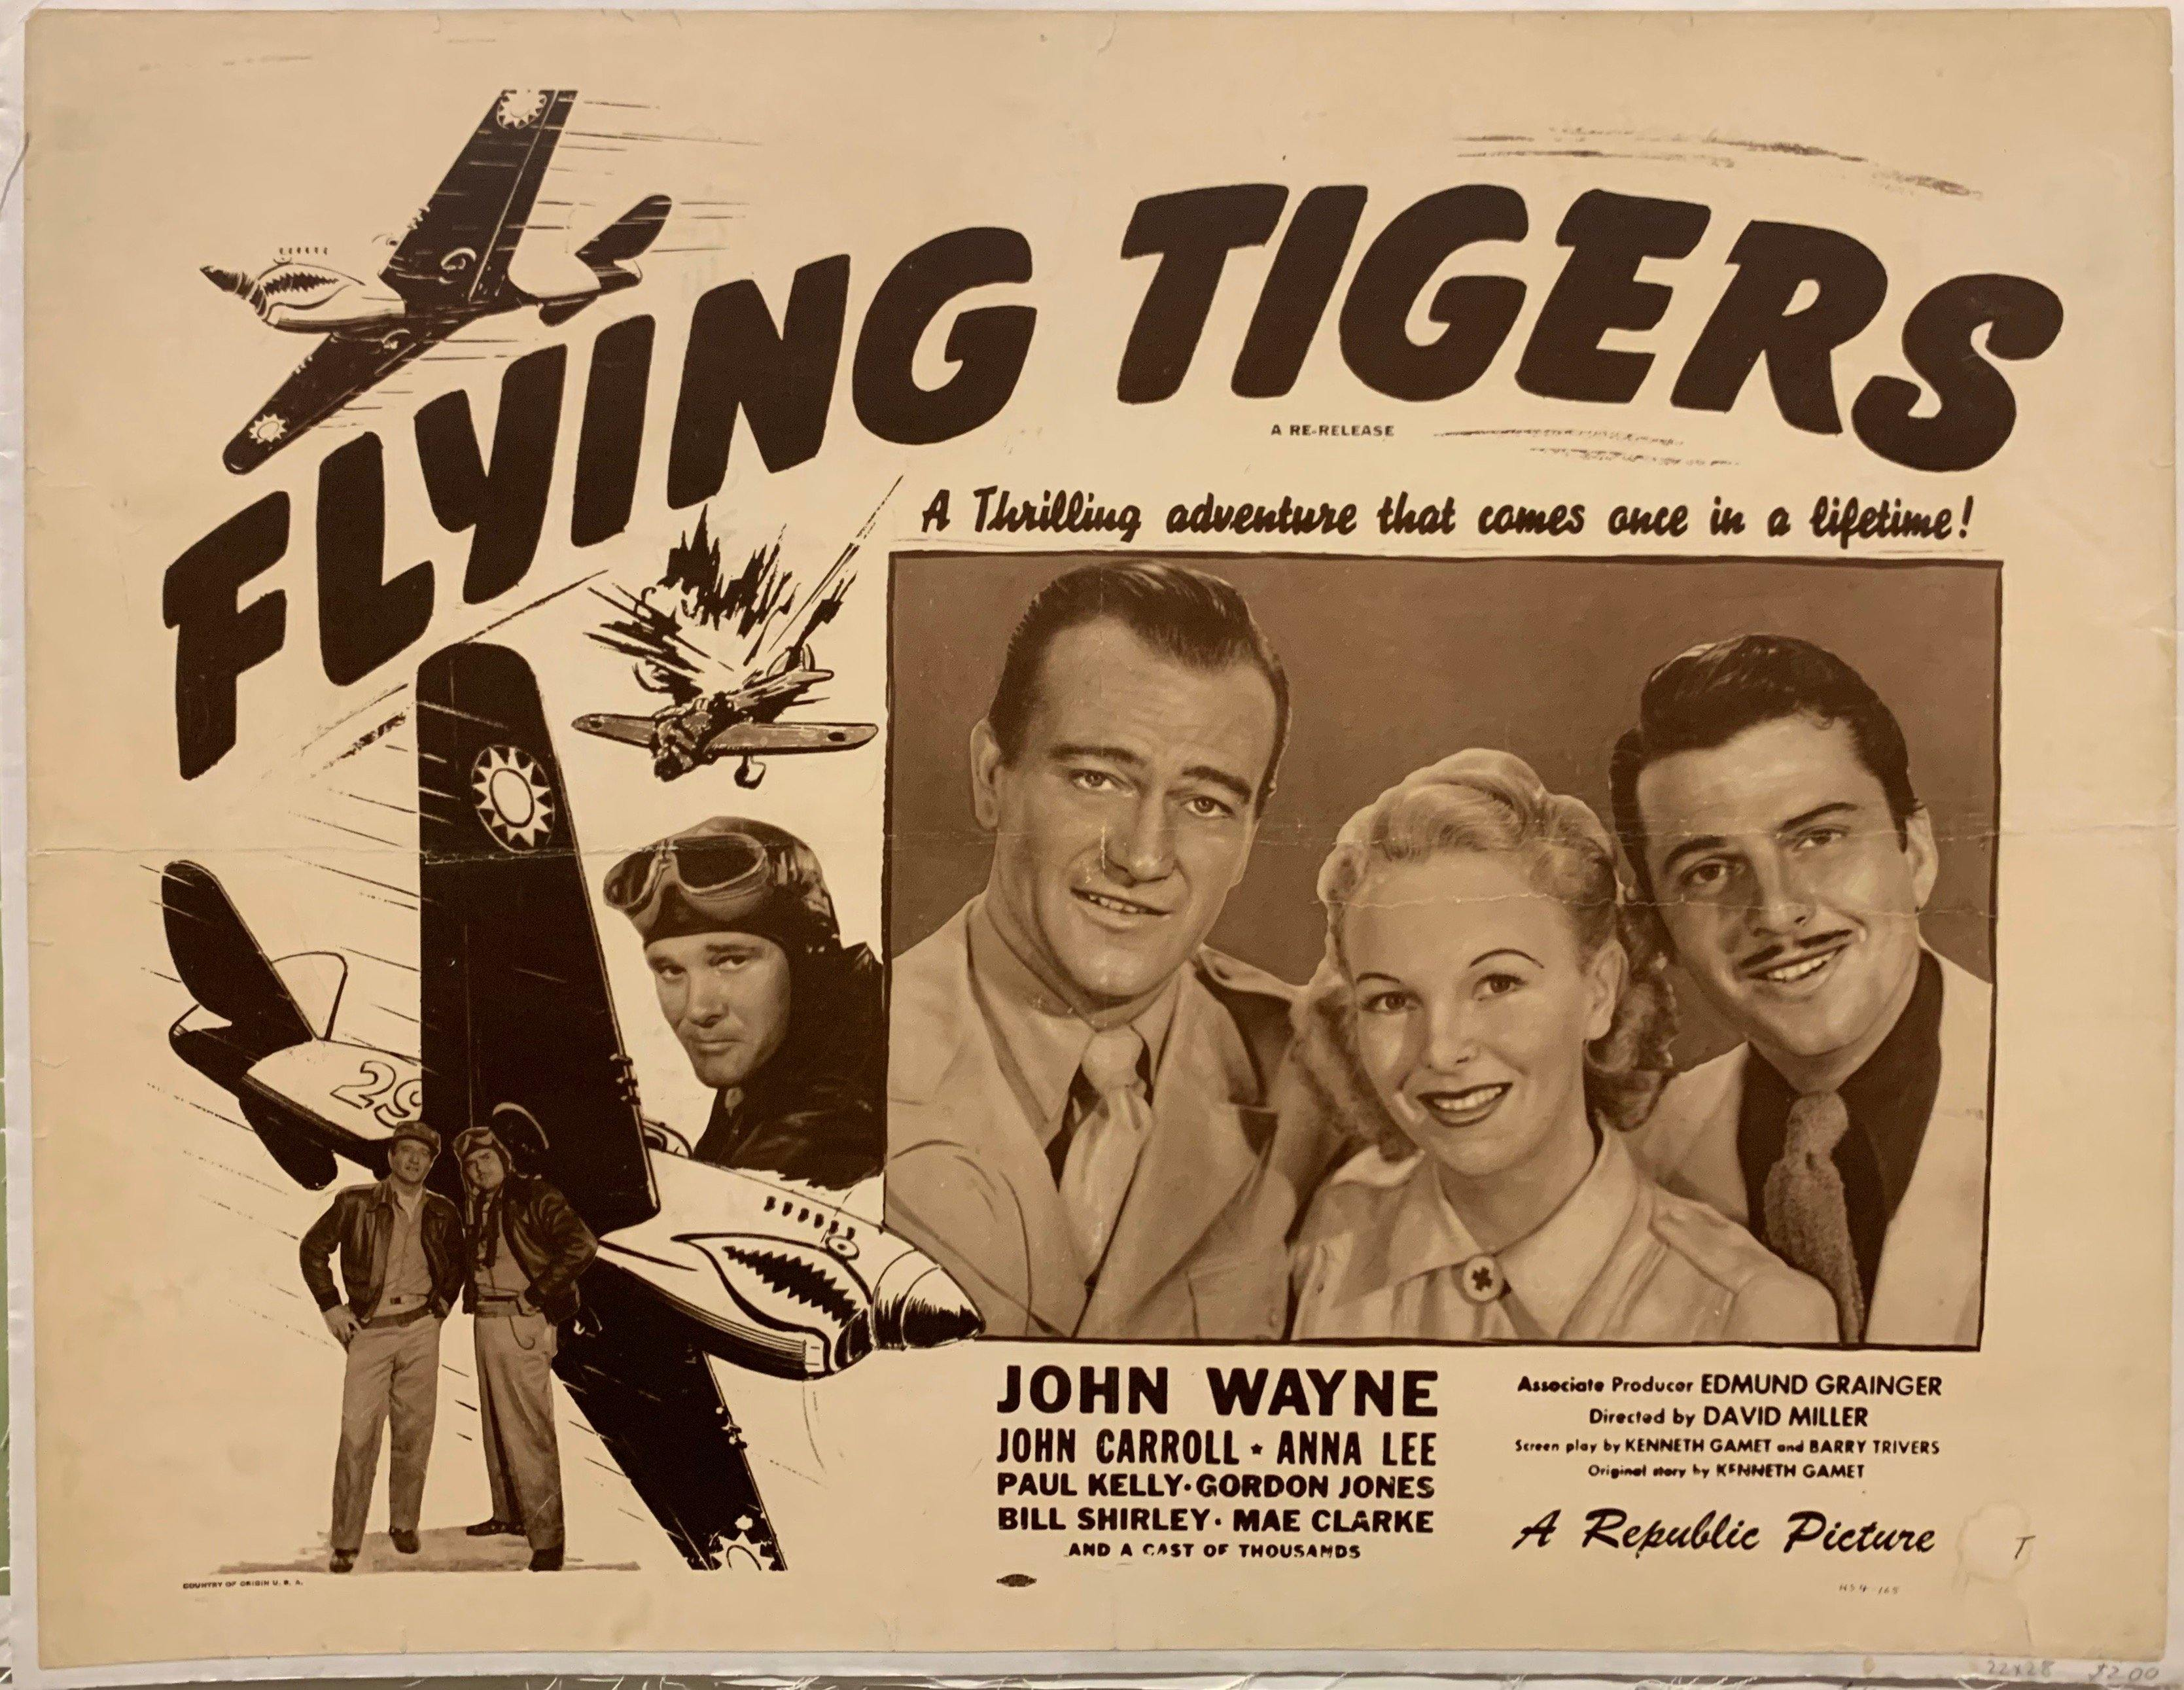 Flying Tigers Film Poster